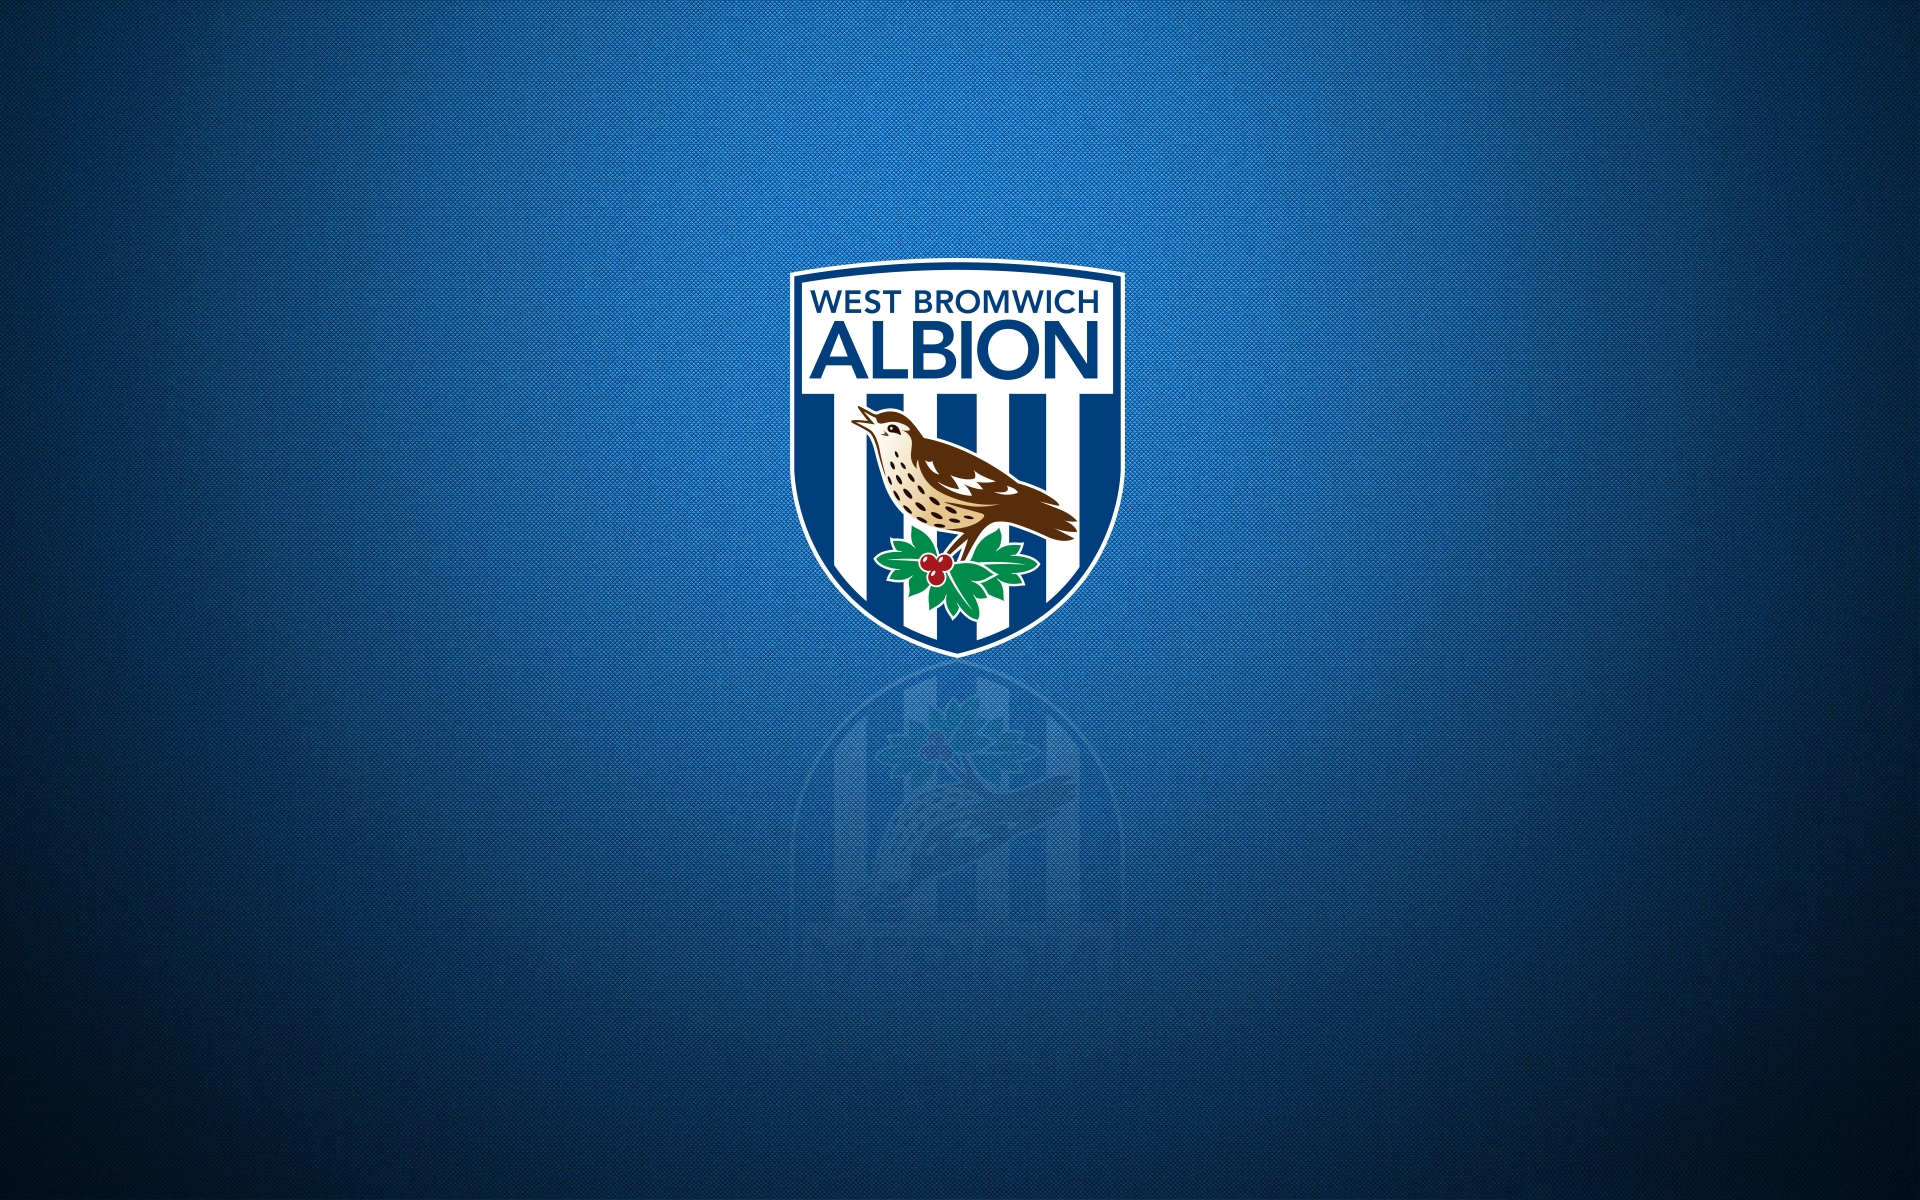 West Bromwich Albion Fc Logos Download